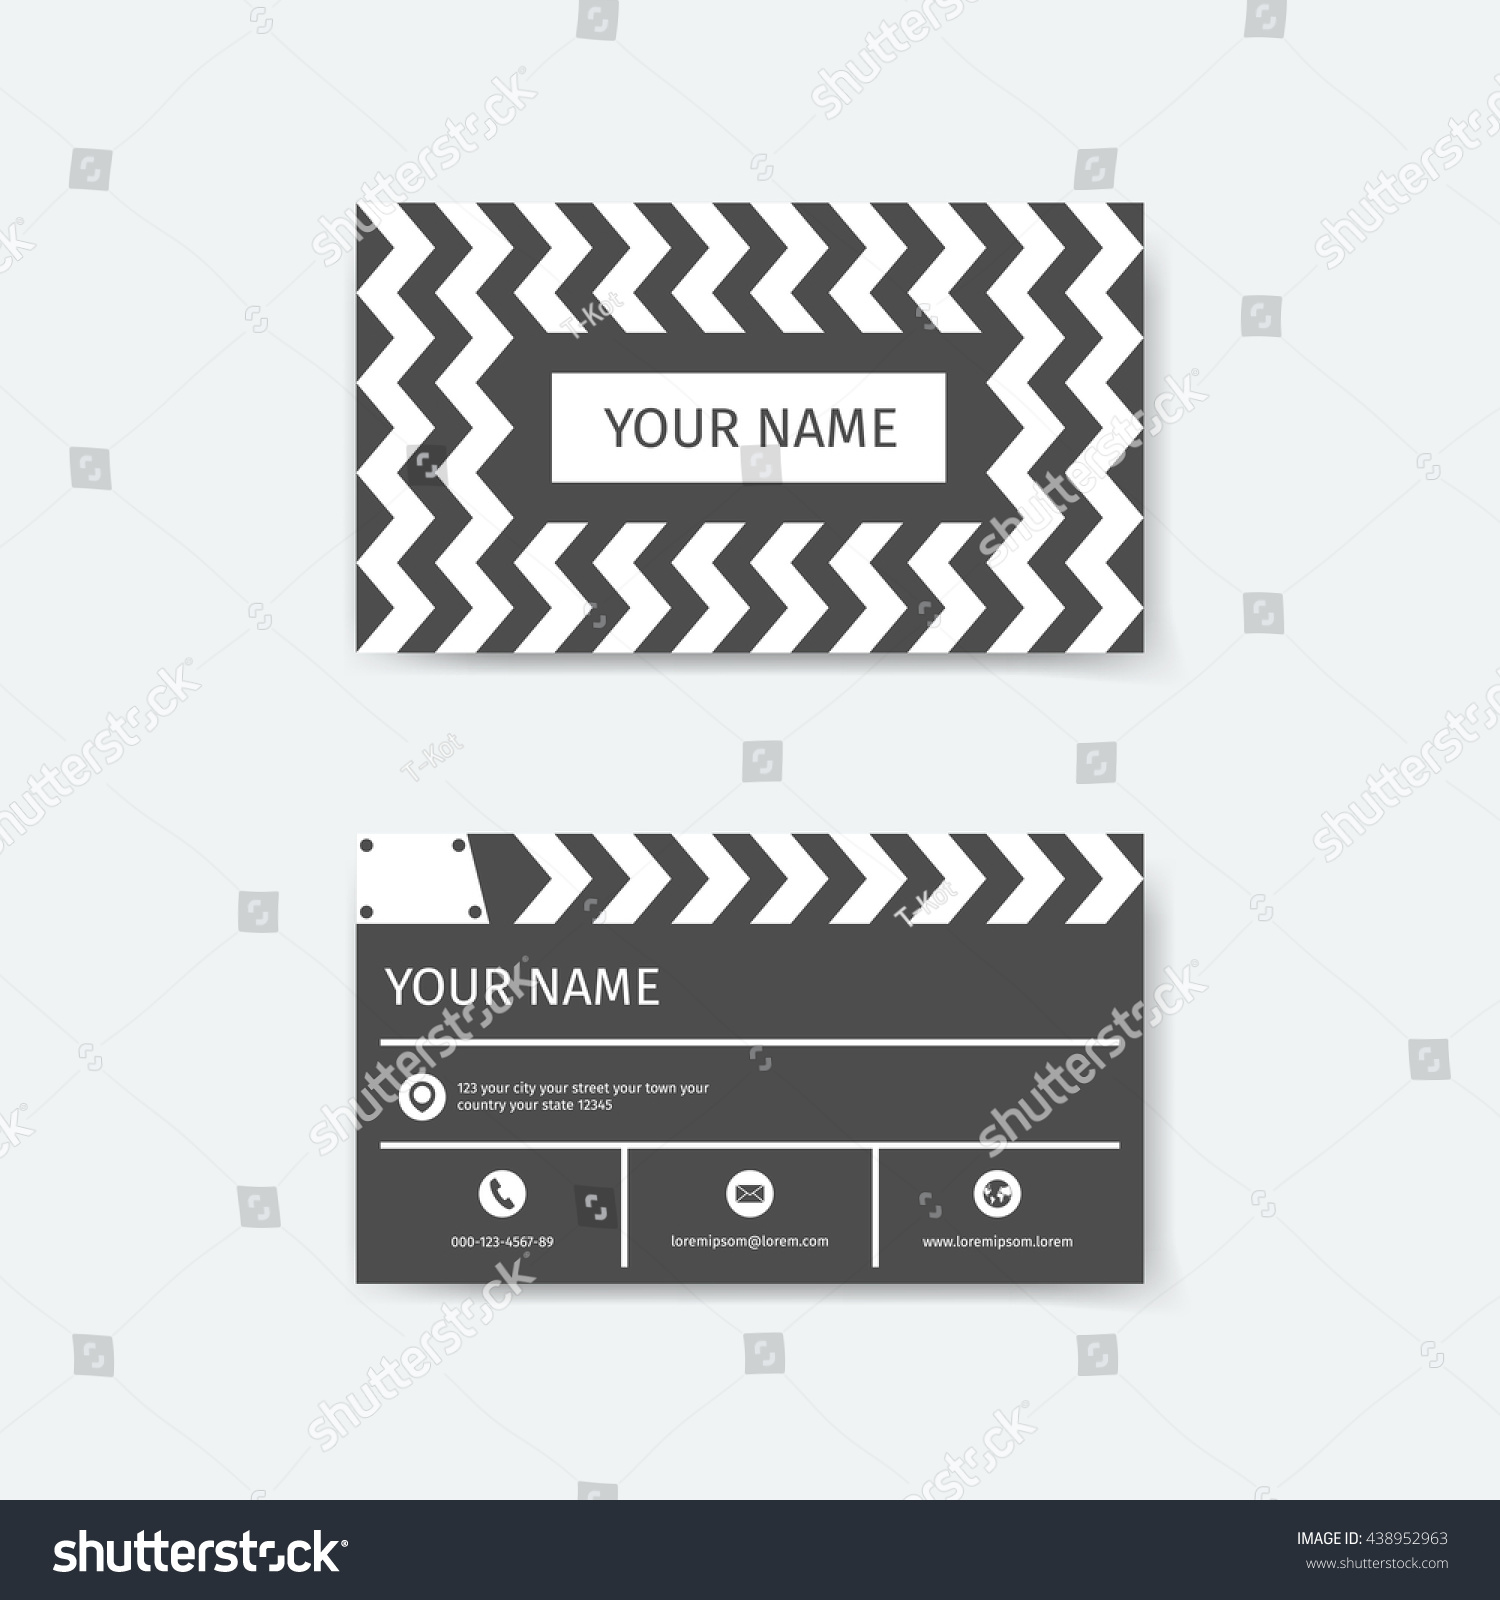 Business Card Design Template Clapboard Film Stock Vector 438952963 ...